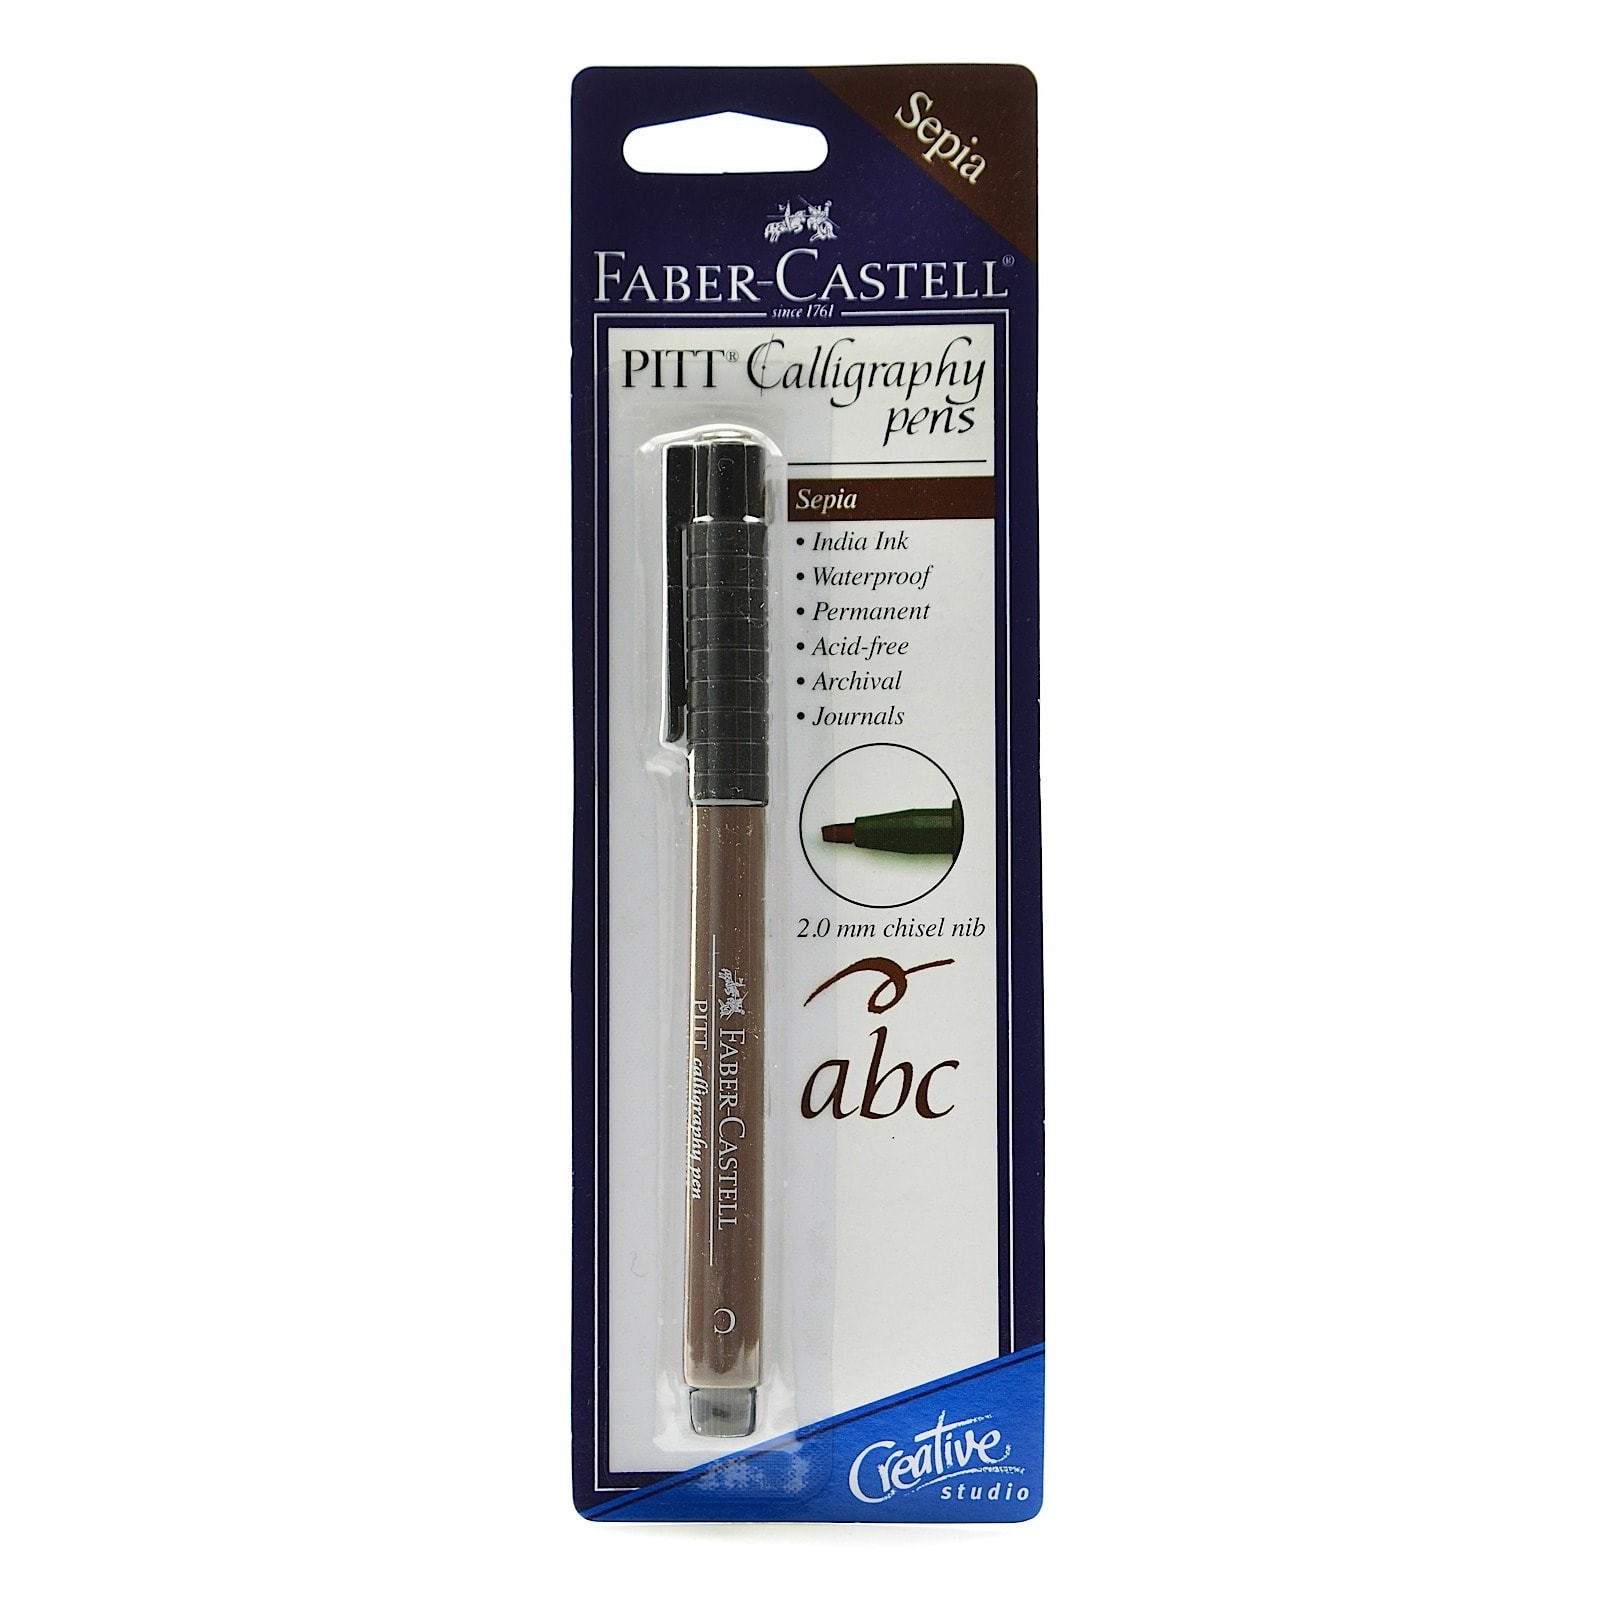 Faber-Castell Pitt Chisel Sepia Nib Calligraphy Pens (Pack of 10)